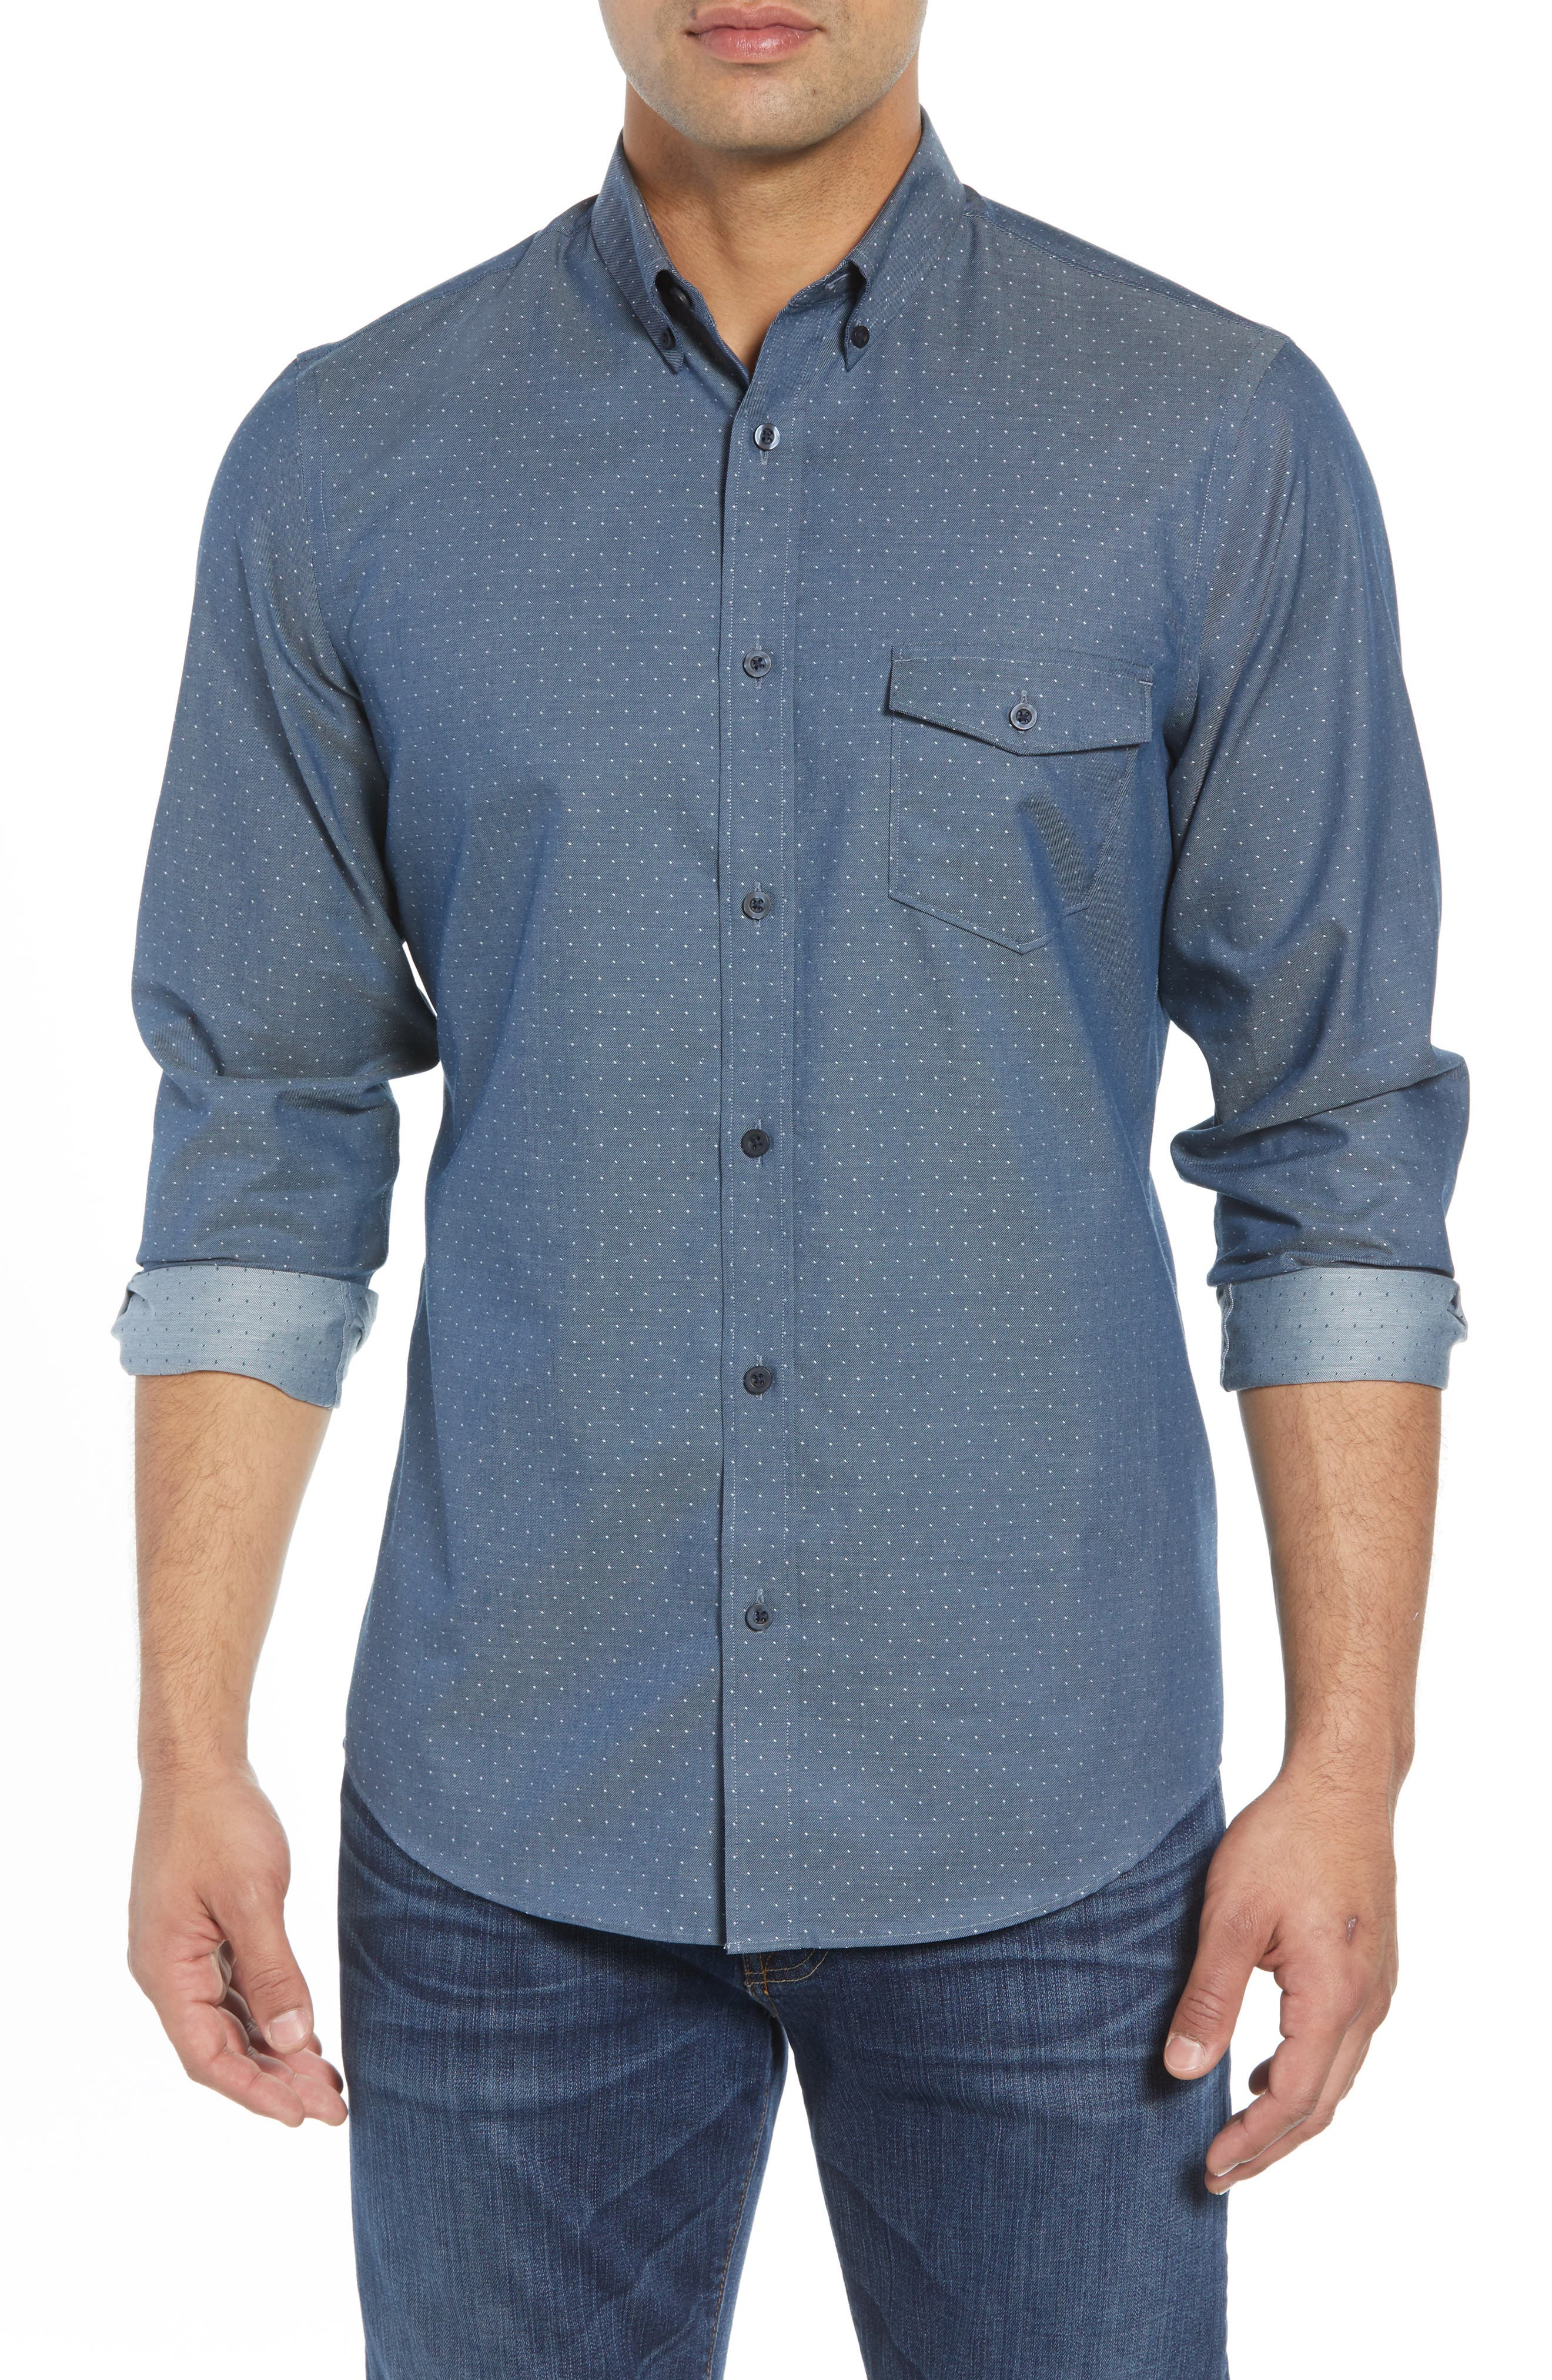 Regular Fit Dobby No-Iron Sport Shirt,                         Main,                         color, NAVY ARMADA CHAMBRAY DOBBY